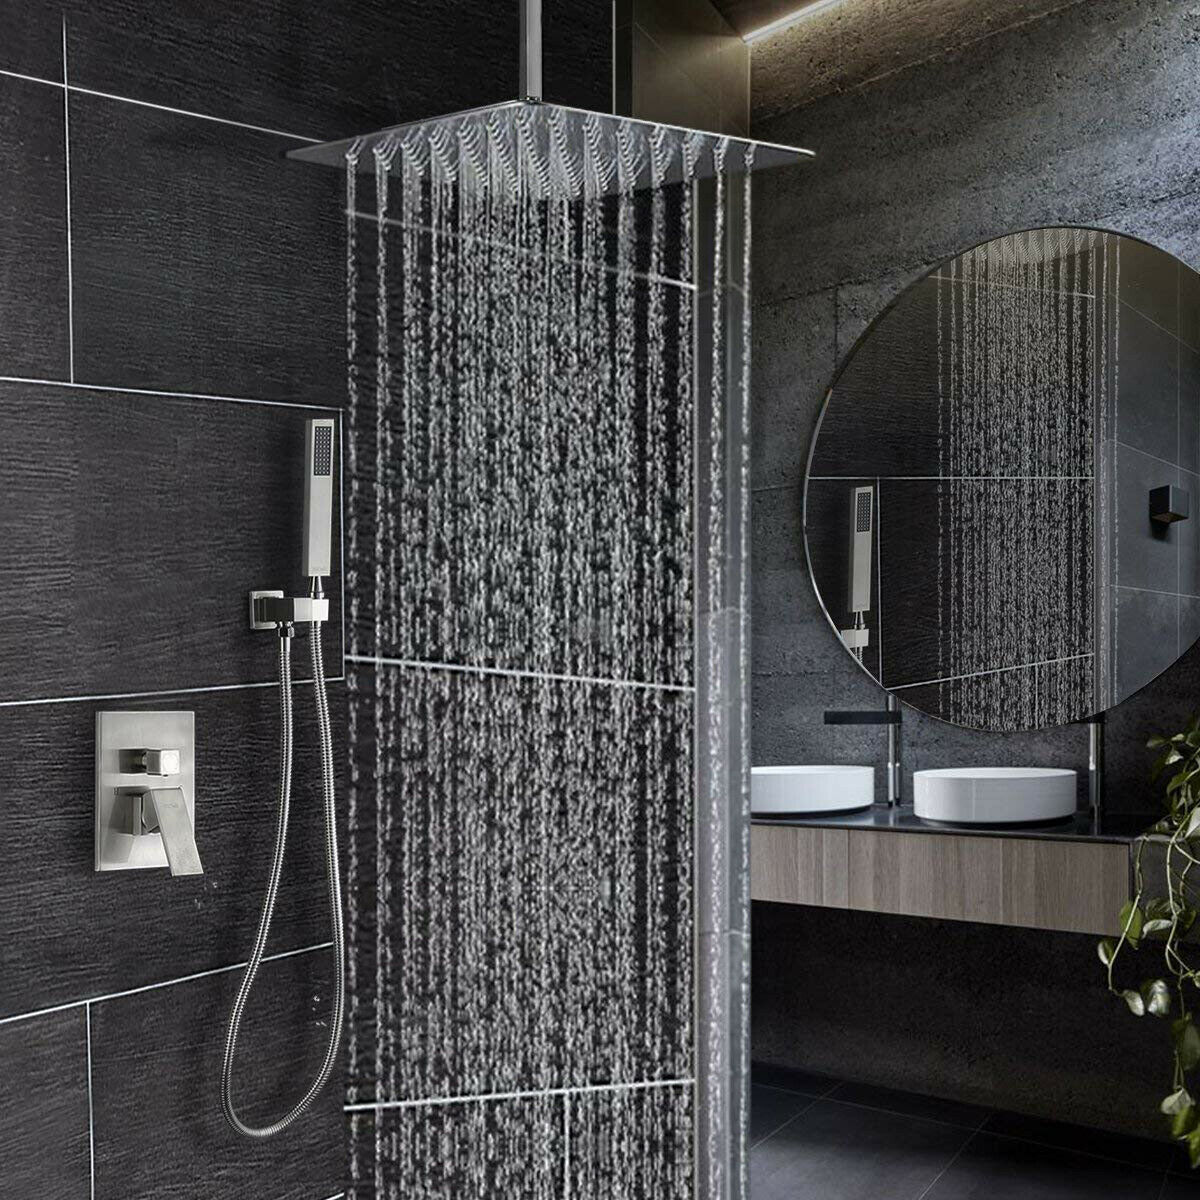 Brushed Nickel Shower Faucet Set With Valve And 16 Rain Shower Head Systems